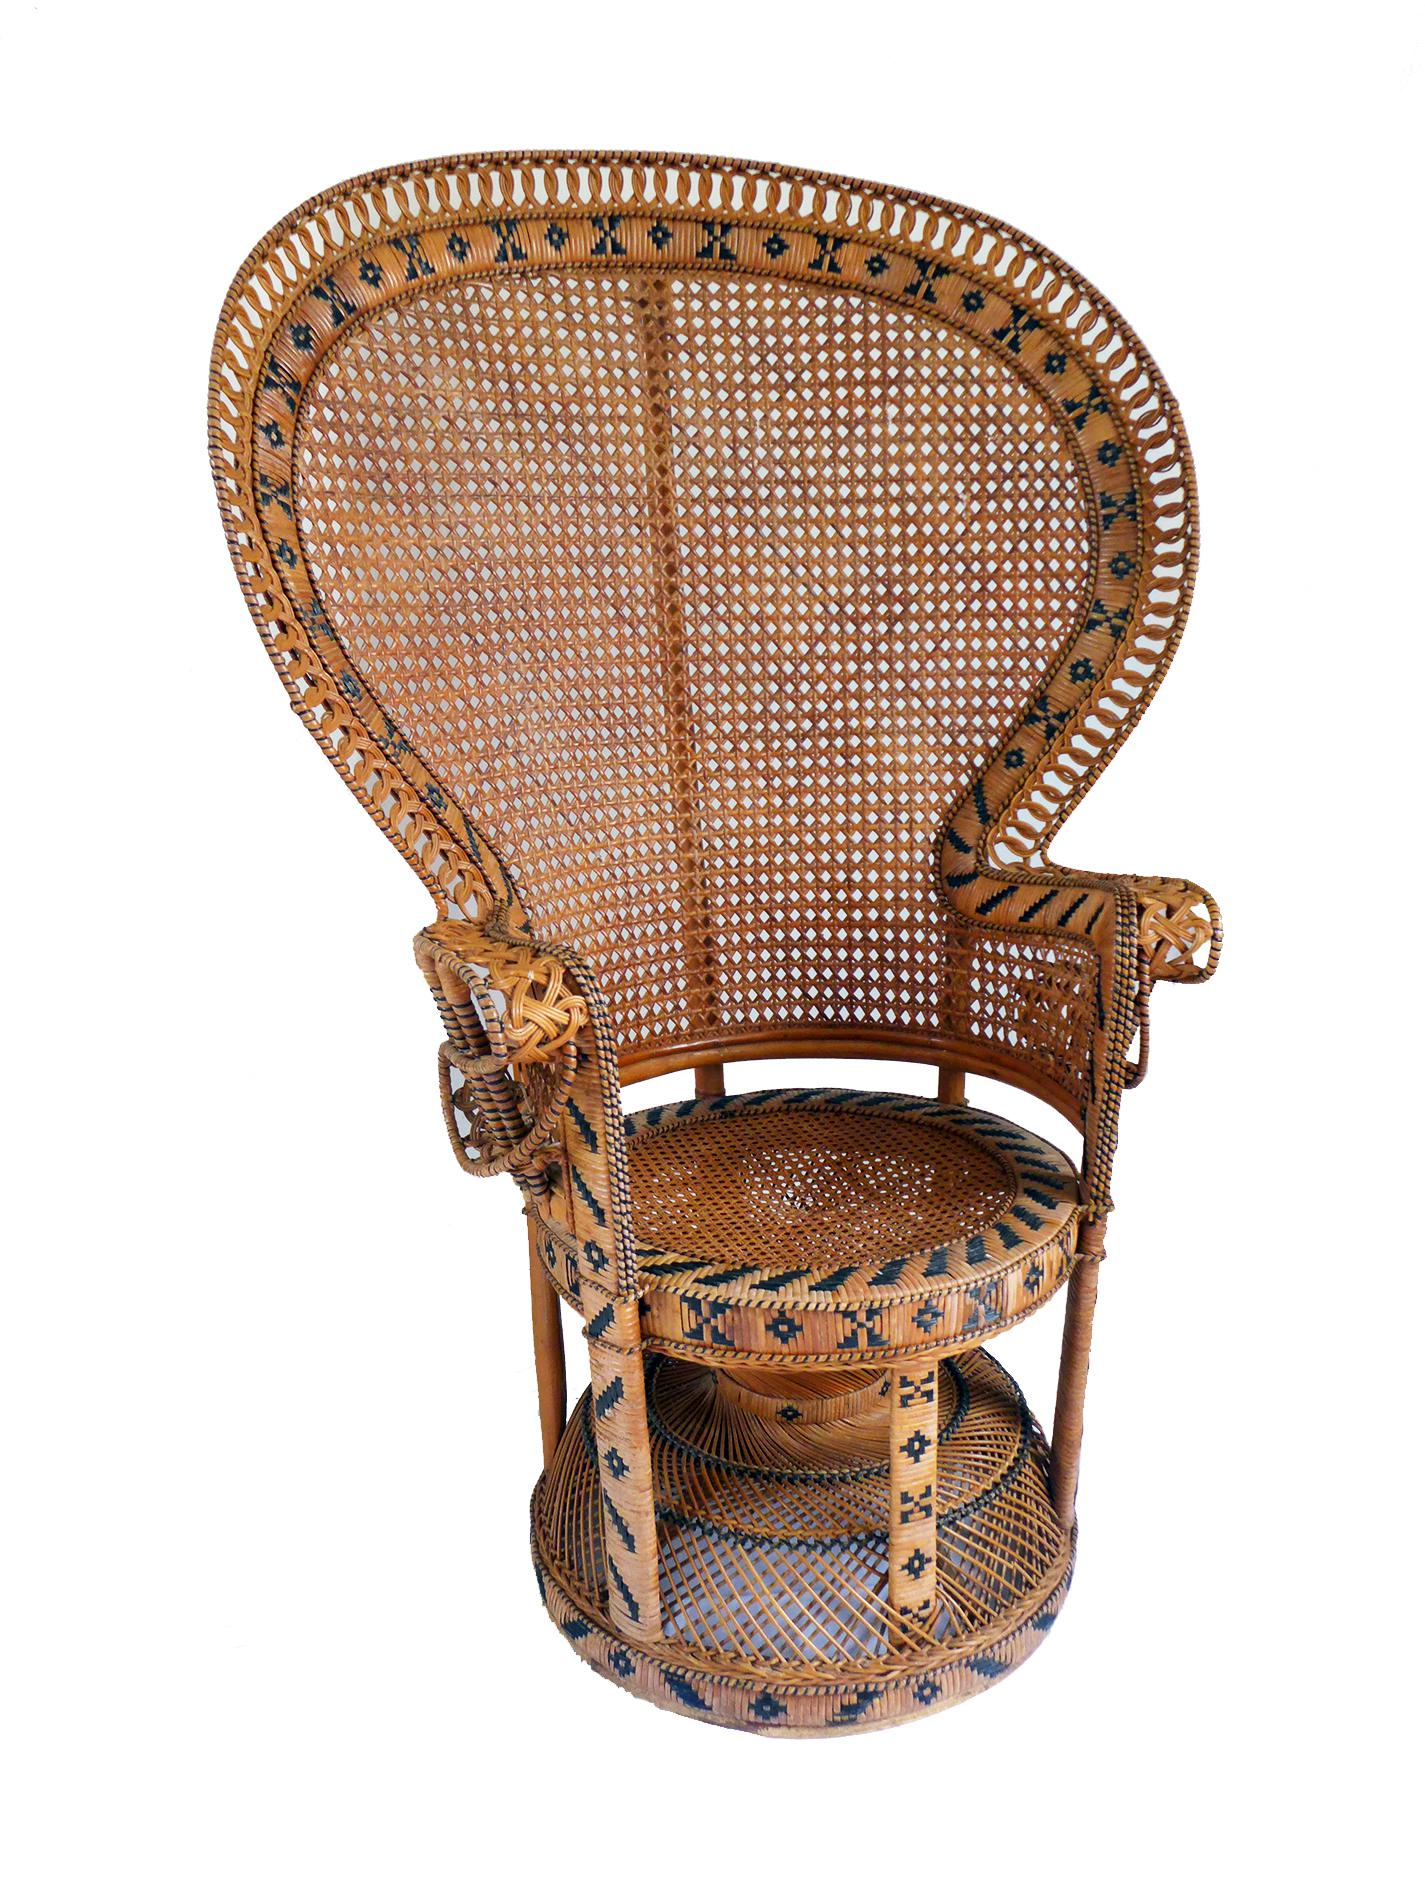 Superieur Beautiful 1970s Vintage Rattan Emmanuel Peacock Fan Chair Features  Intricate Weaving With Tribal Black Accents.